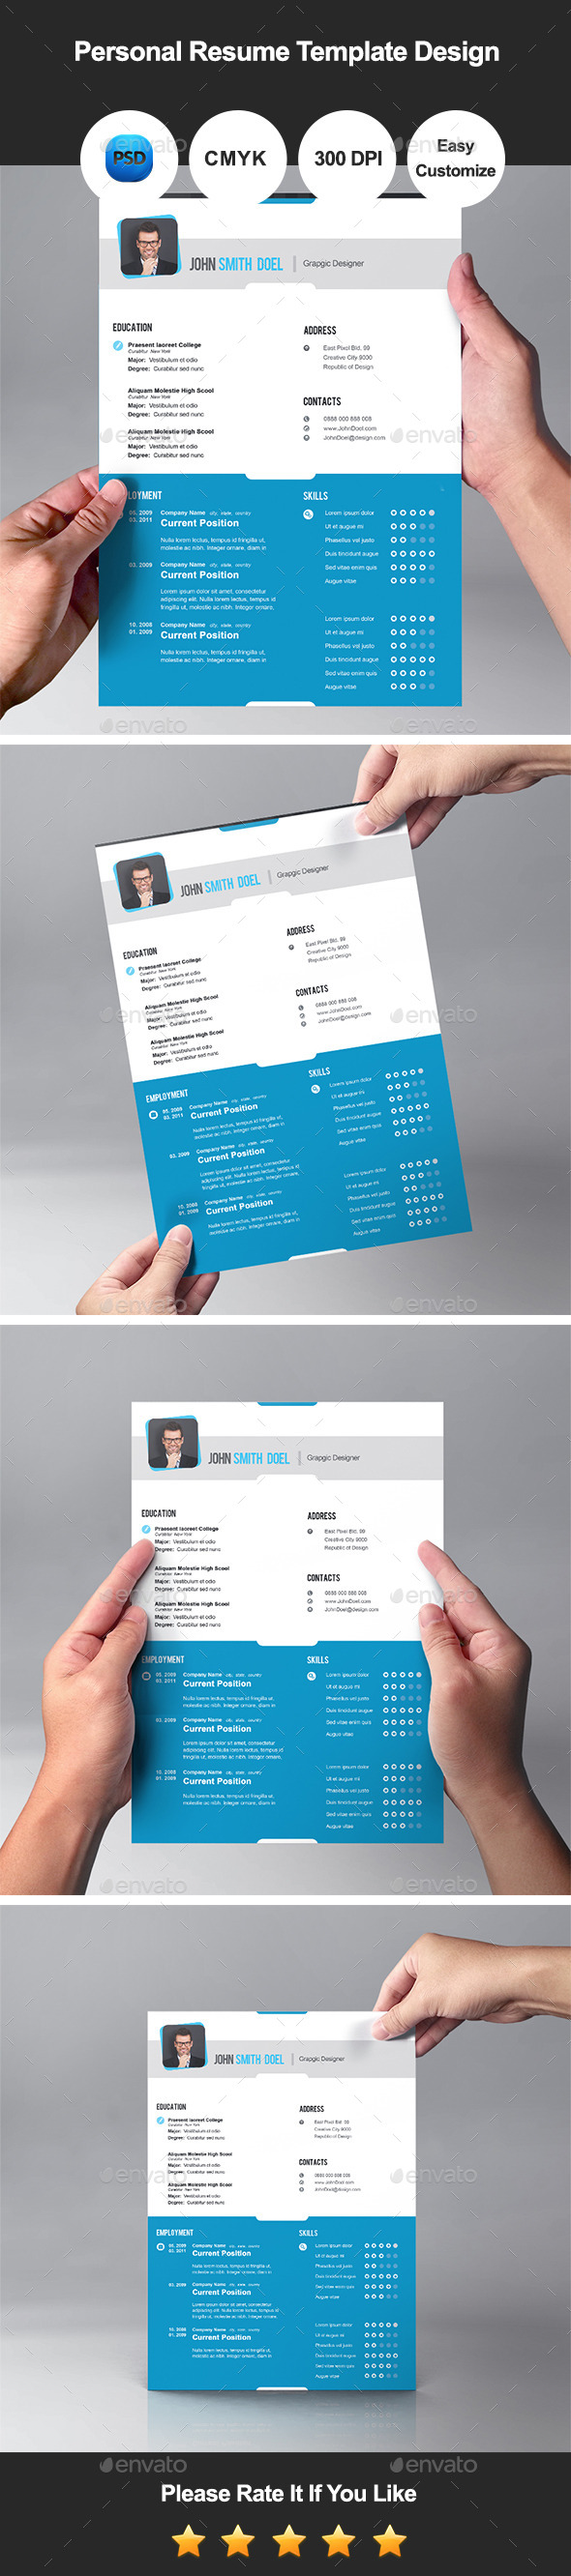 GraphicRiver Personal Resume Template Design 11184142